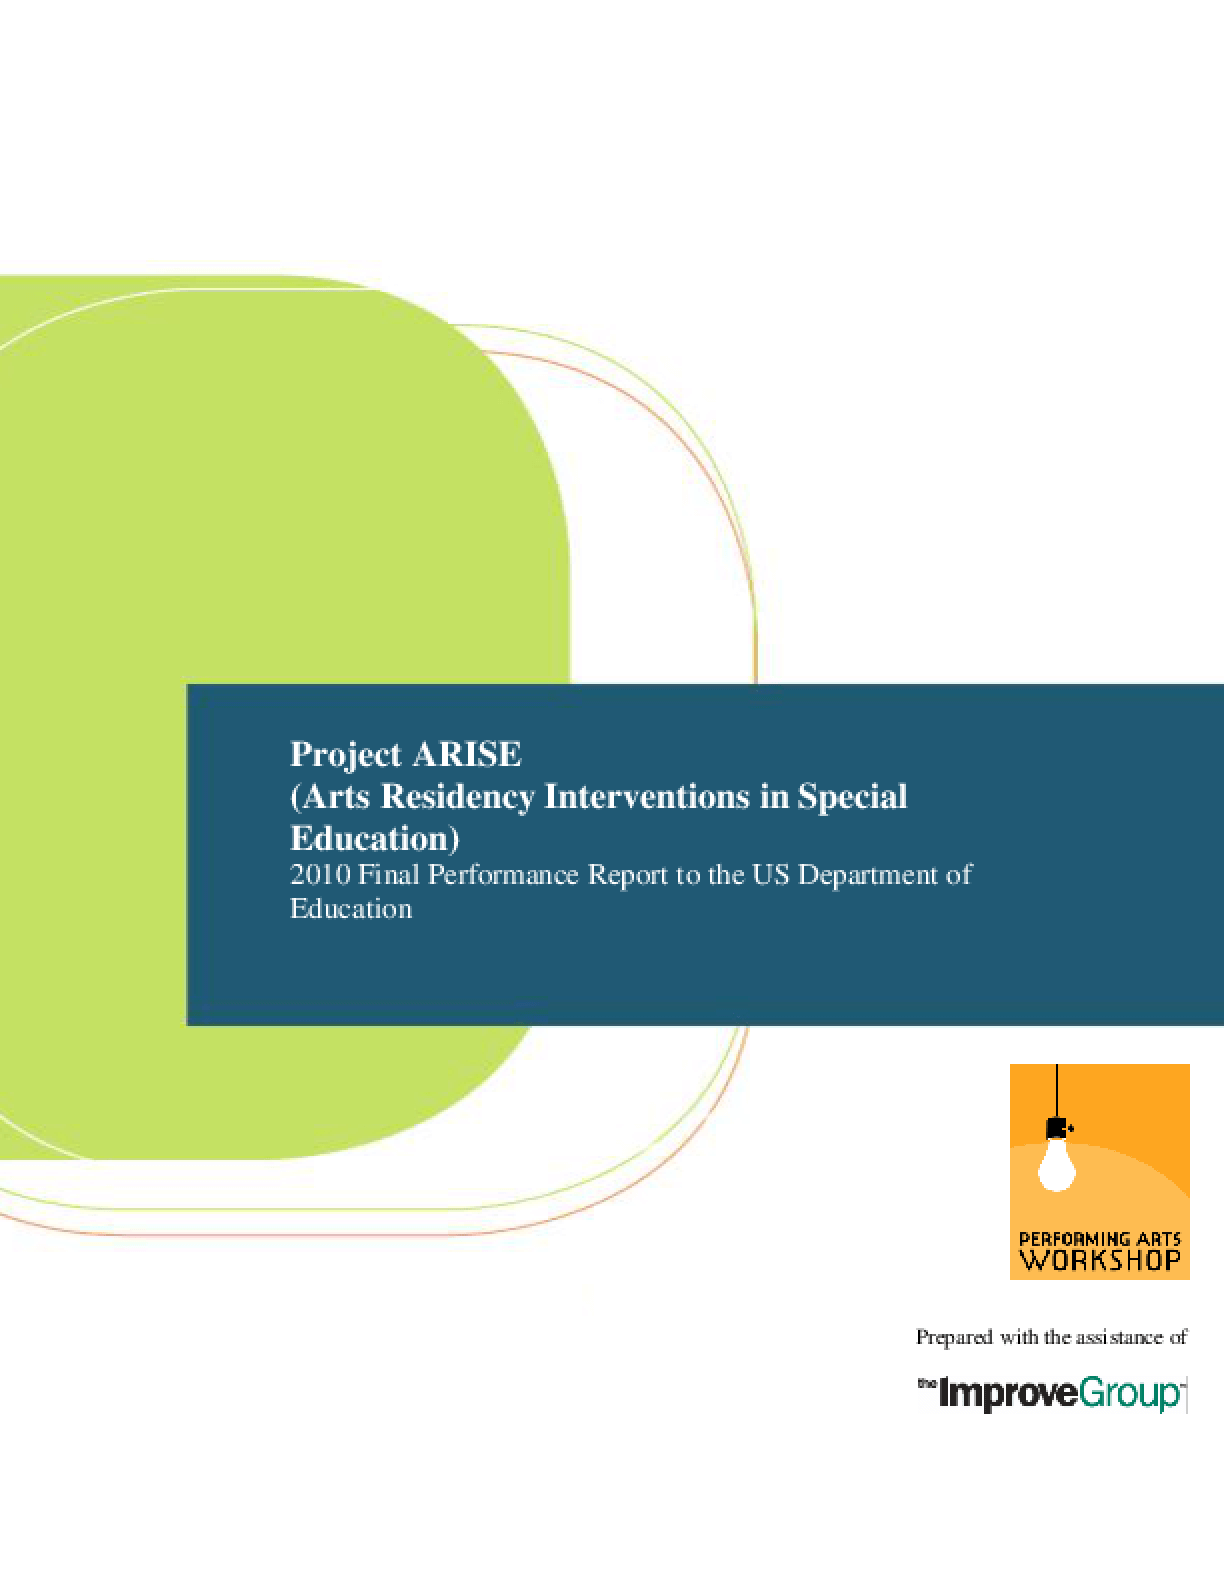 ARISE 2010 Final Performance Report to the US Department of Education